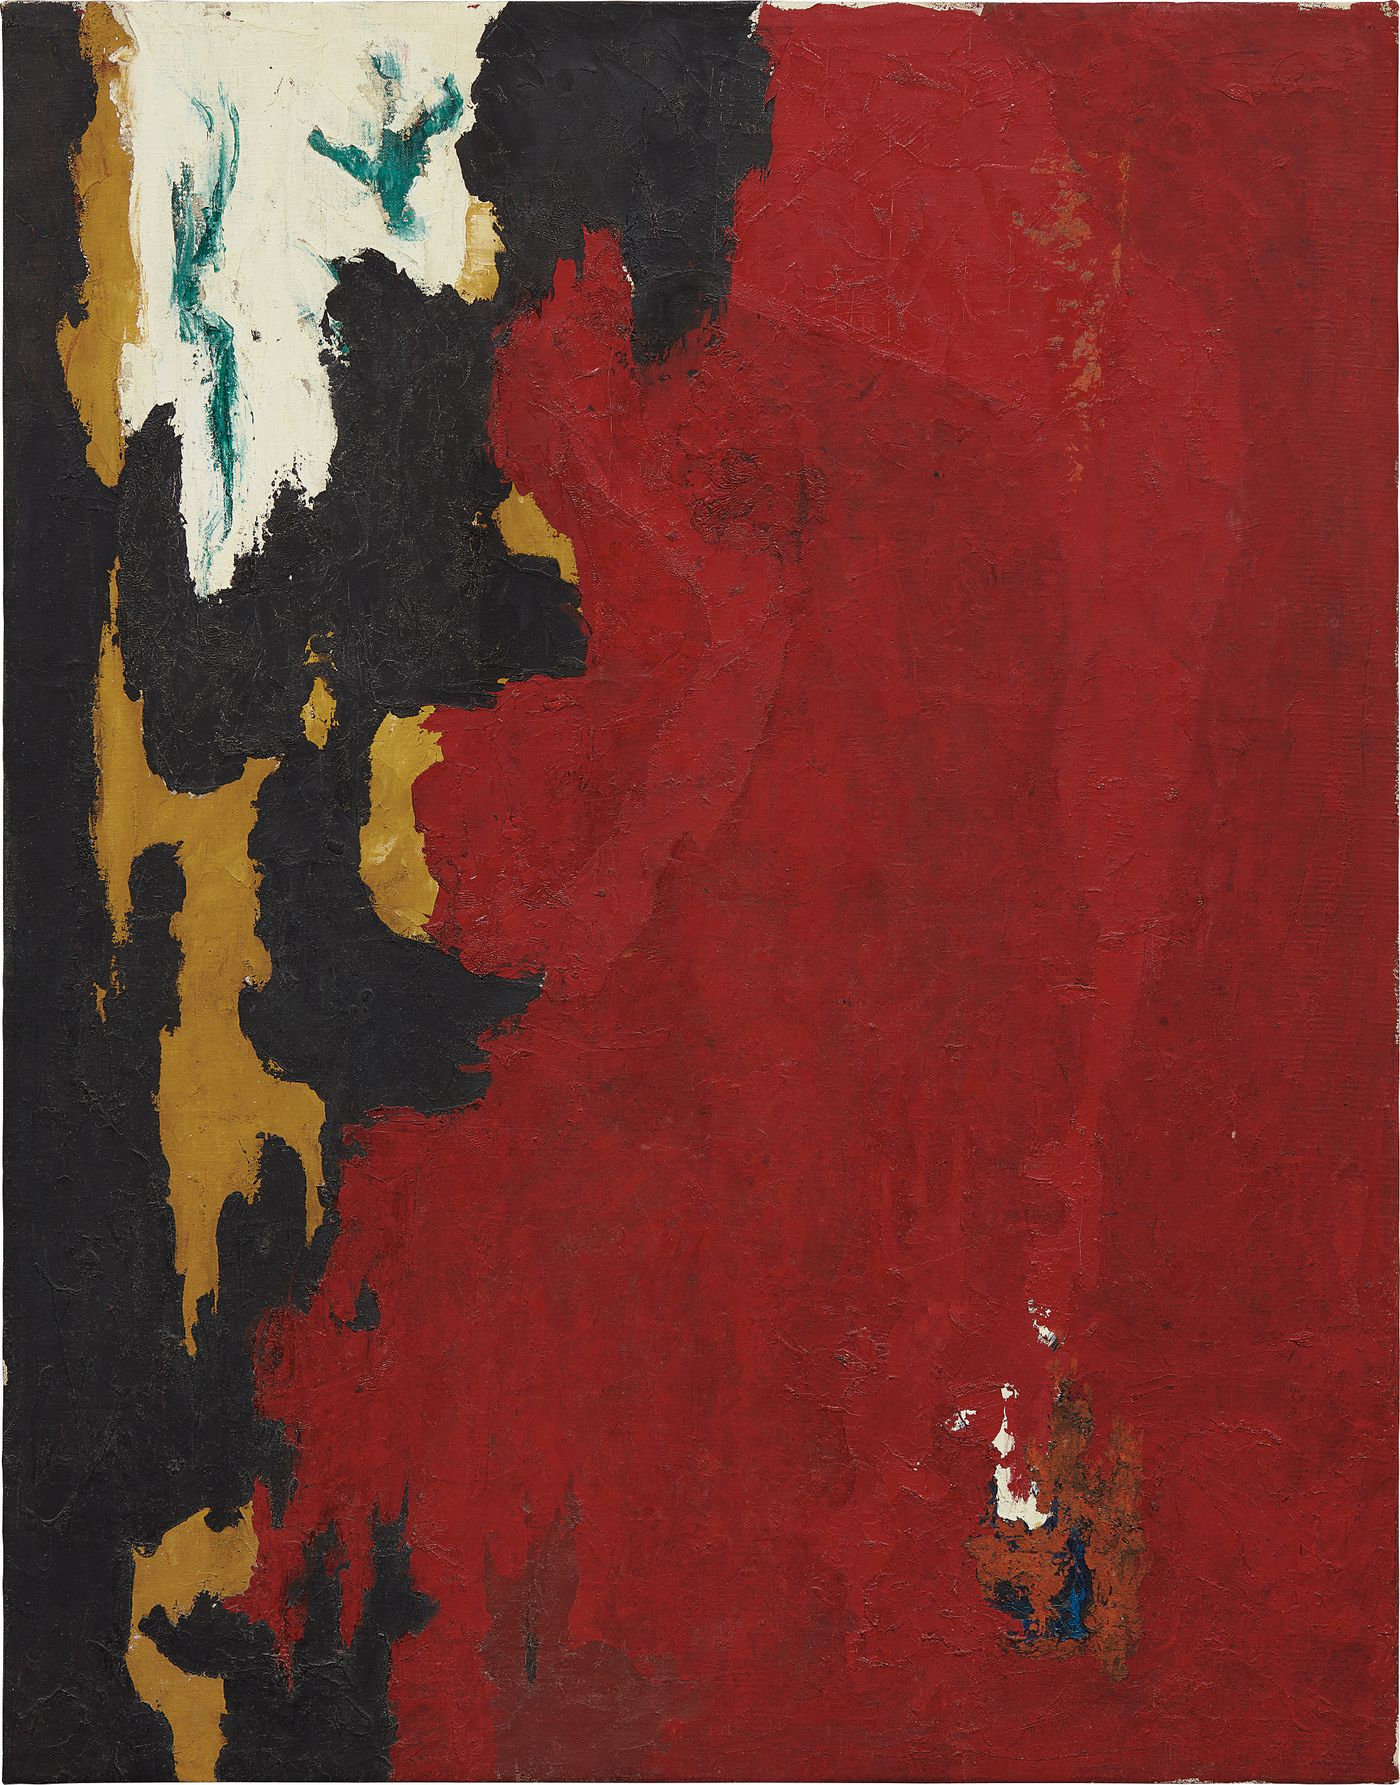 Specialists and curators characterize an abstract expressionist at the height of his powers.